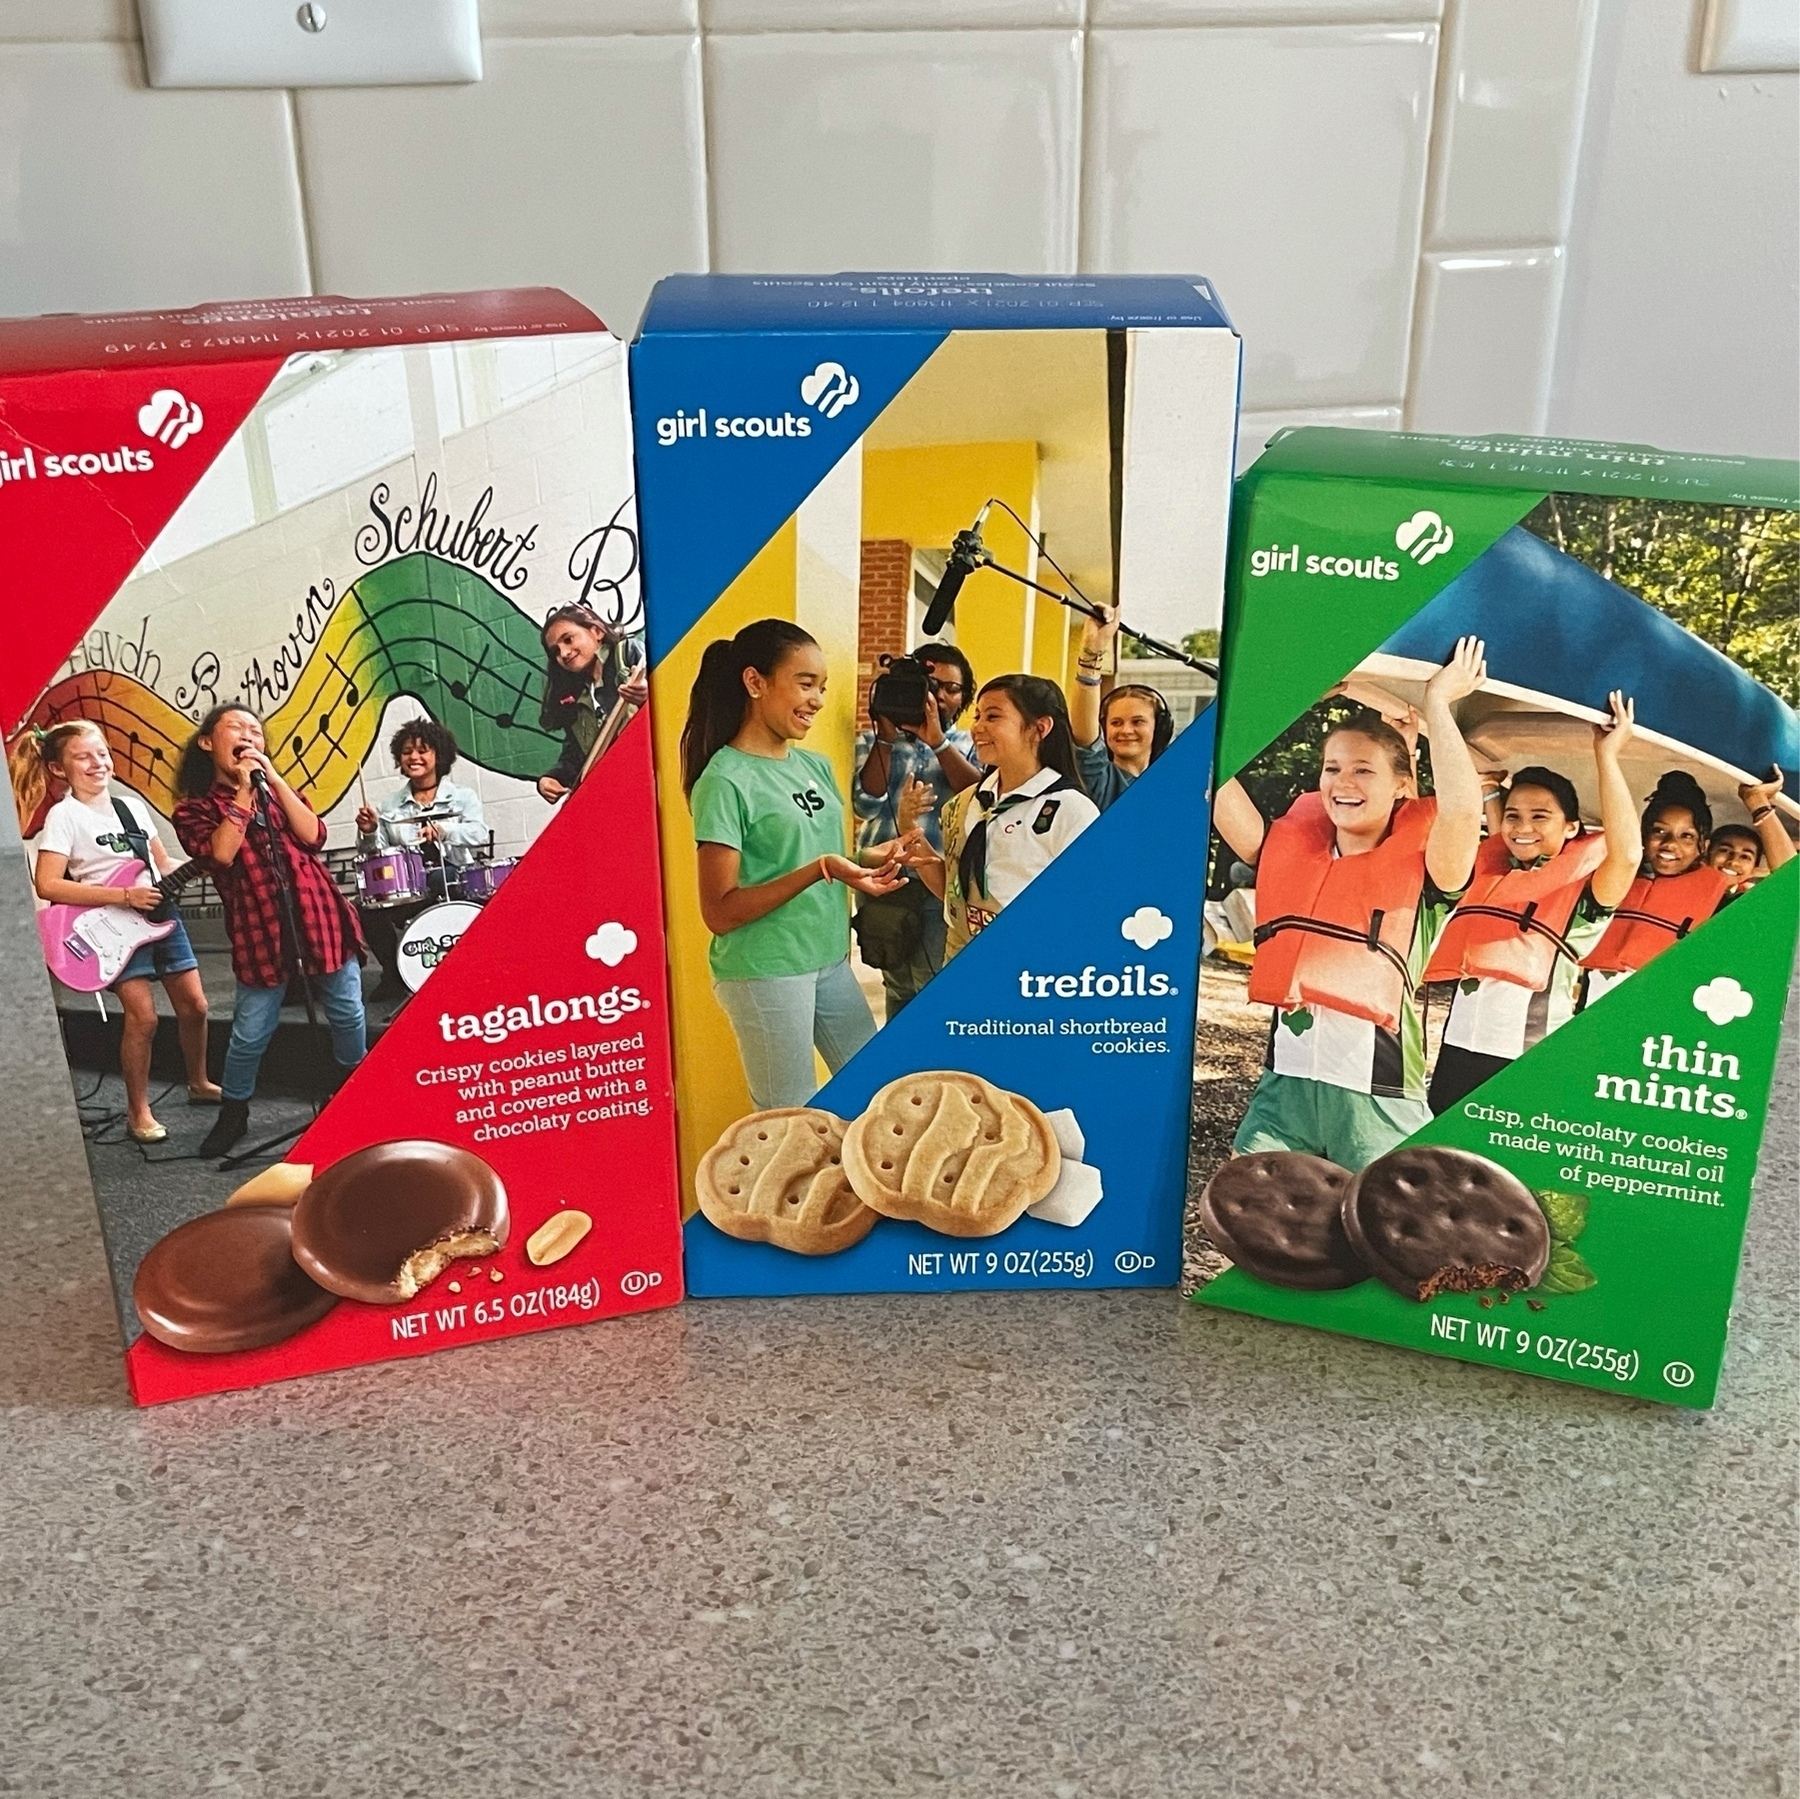 Three boxes of Girl Scout cookies